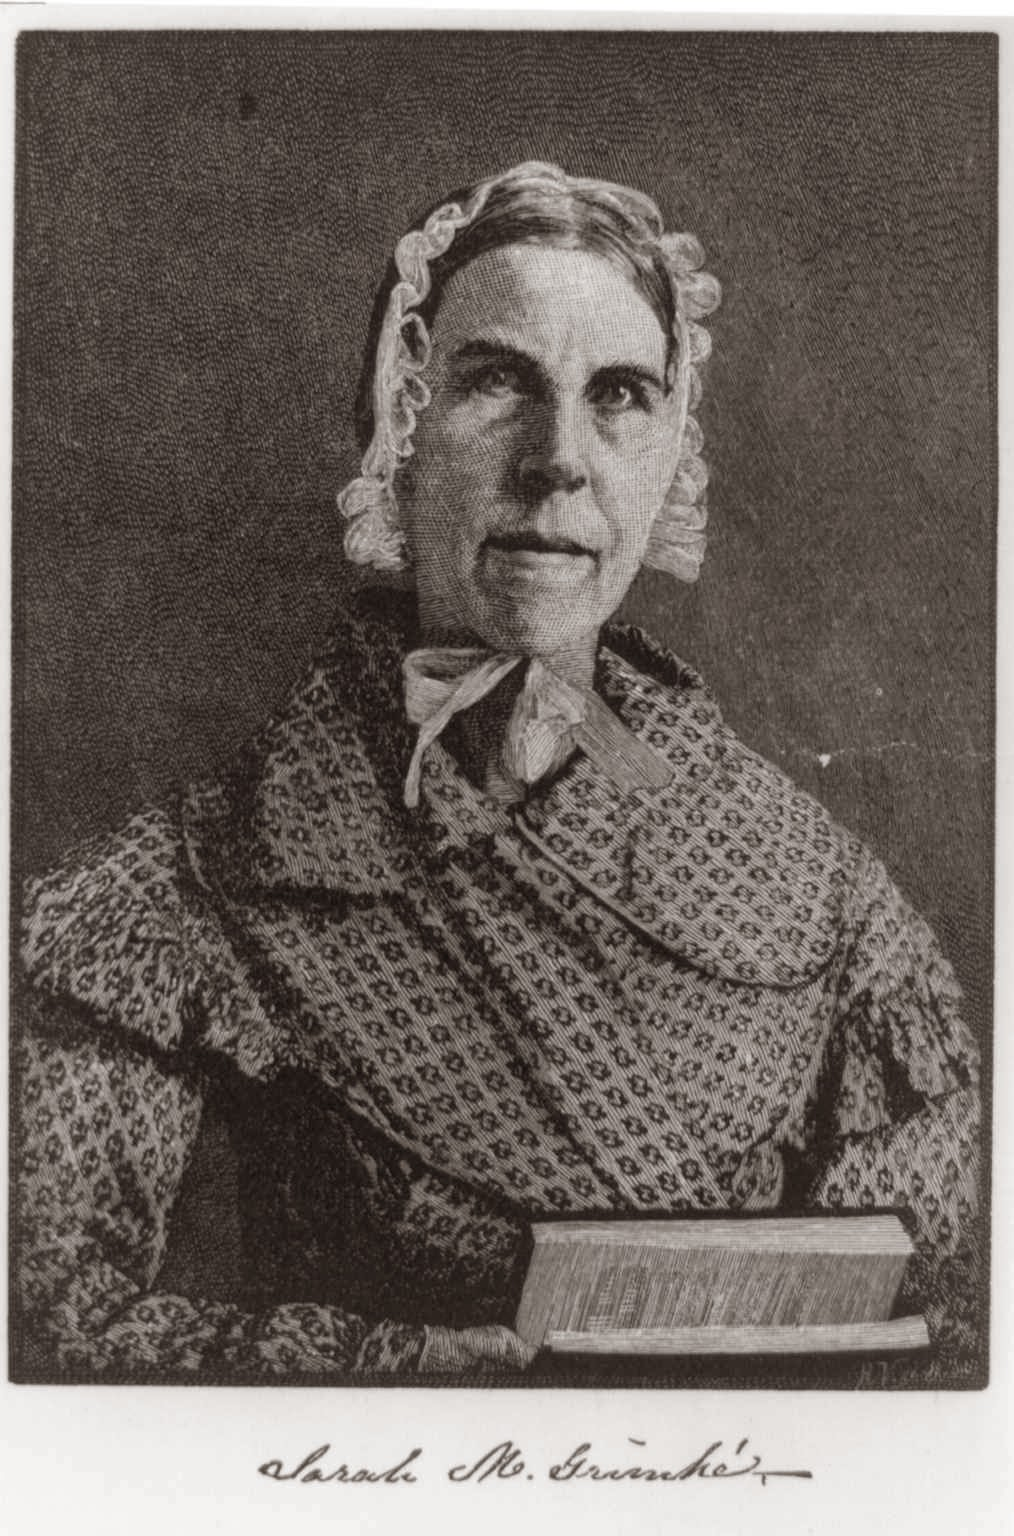 grimke sisters essay Although raised on a slave-owning plantation in south carolina, angelina grimk é weld grew up to become an ardent abolitionist writer and speaker, as well as a women's rights activist she and her sister sarah moore grimké were among the first women to speak in public against slavery, defying gender norms and risking violence in doing so.